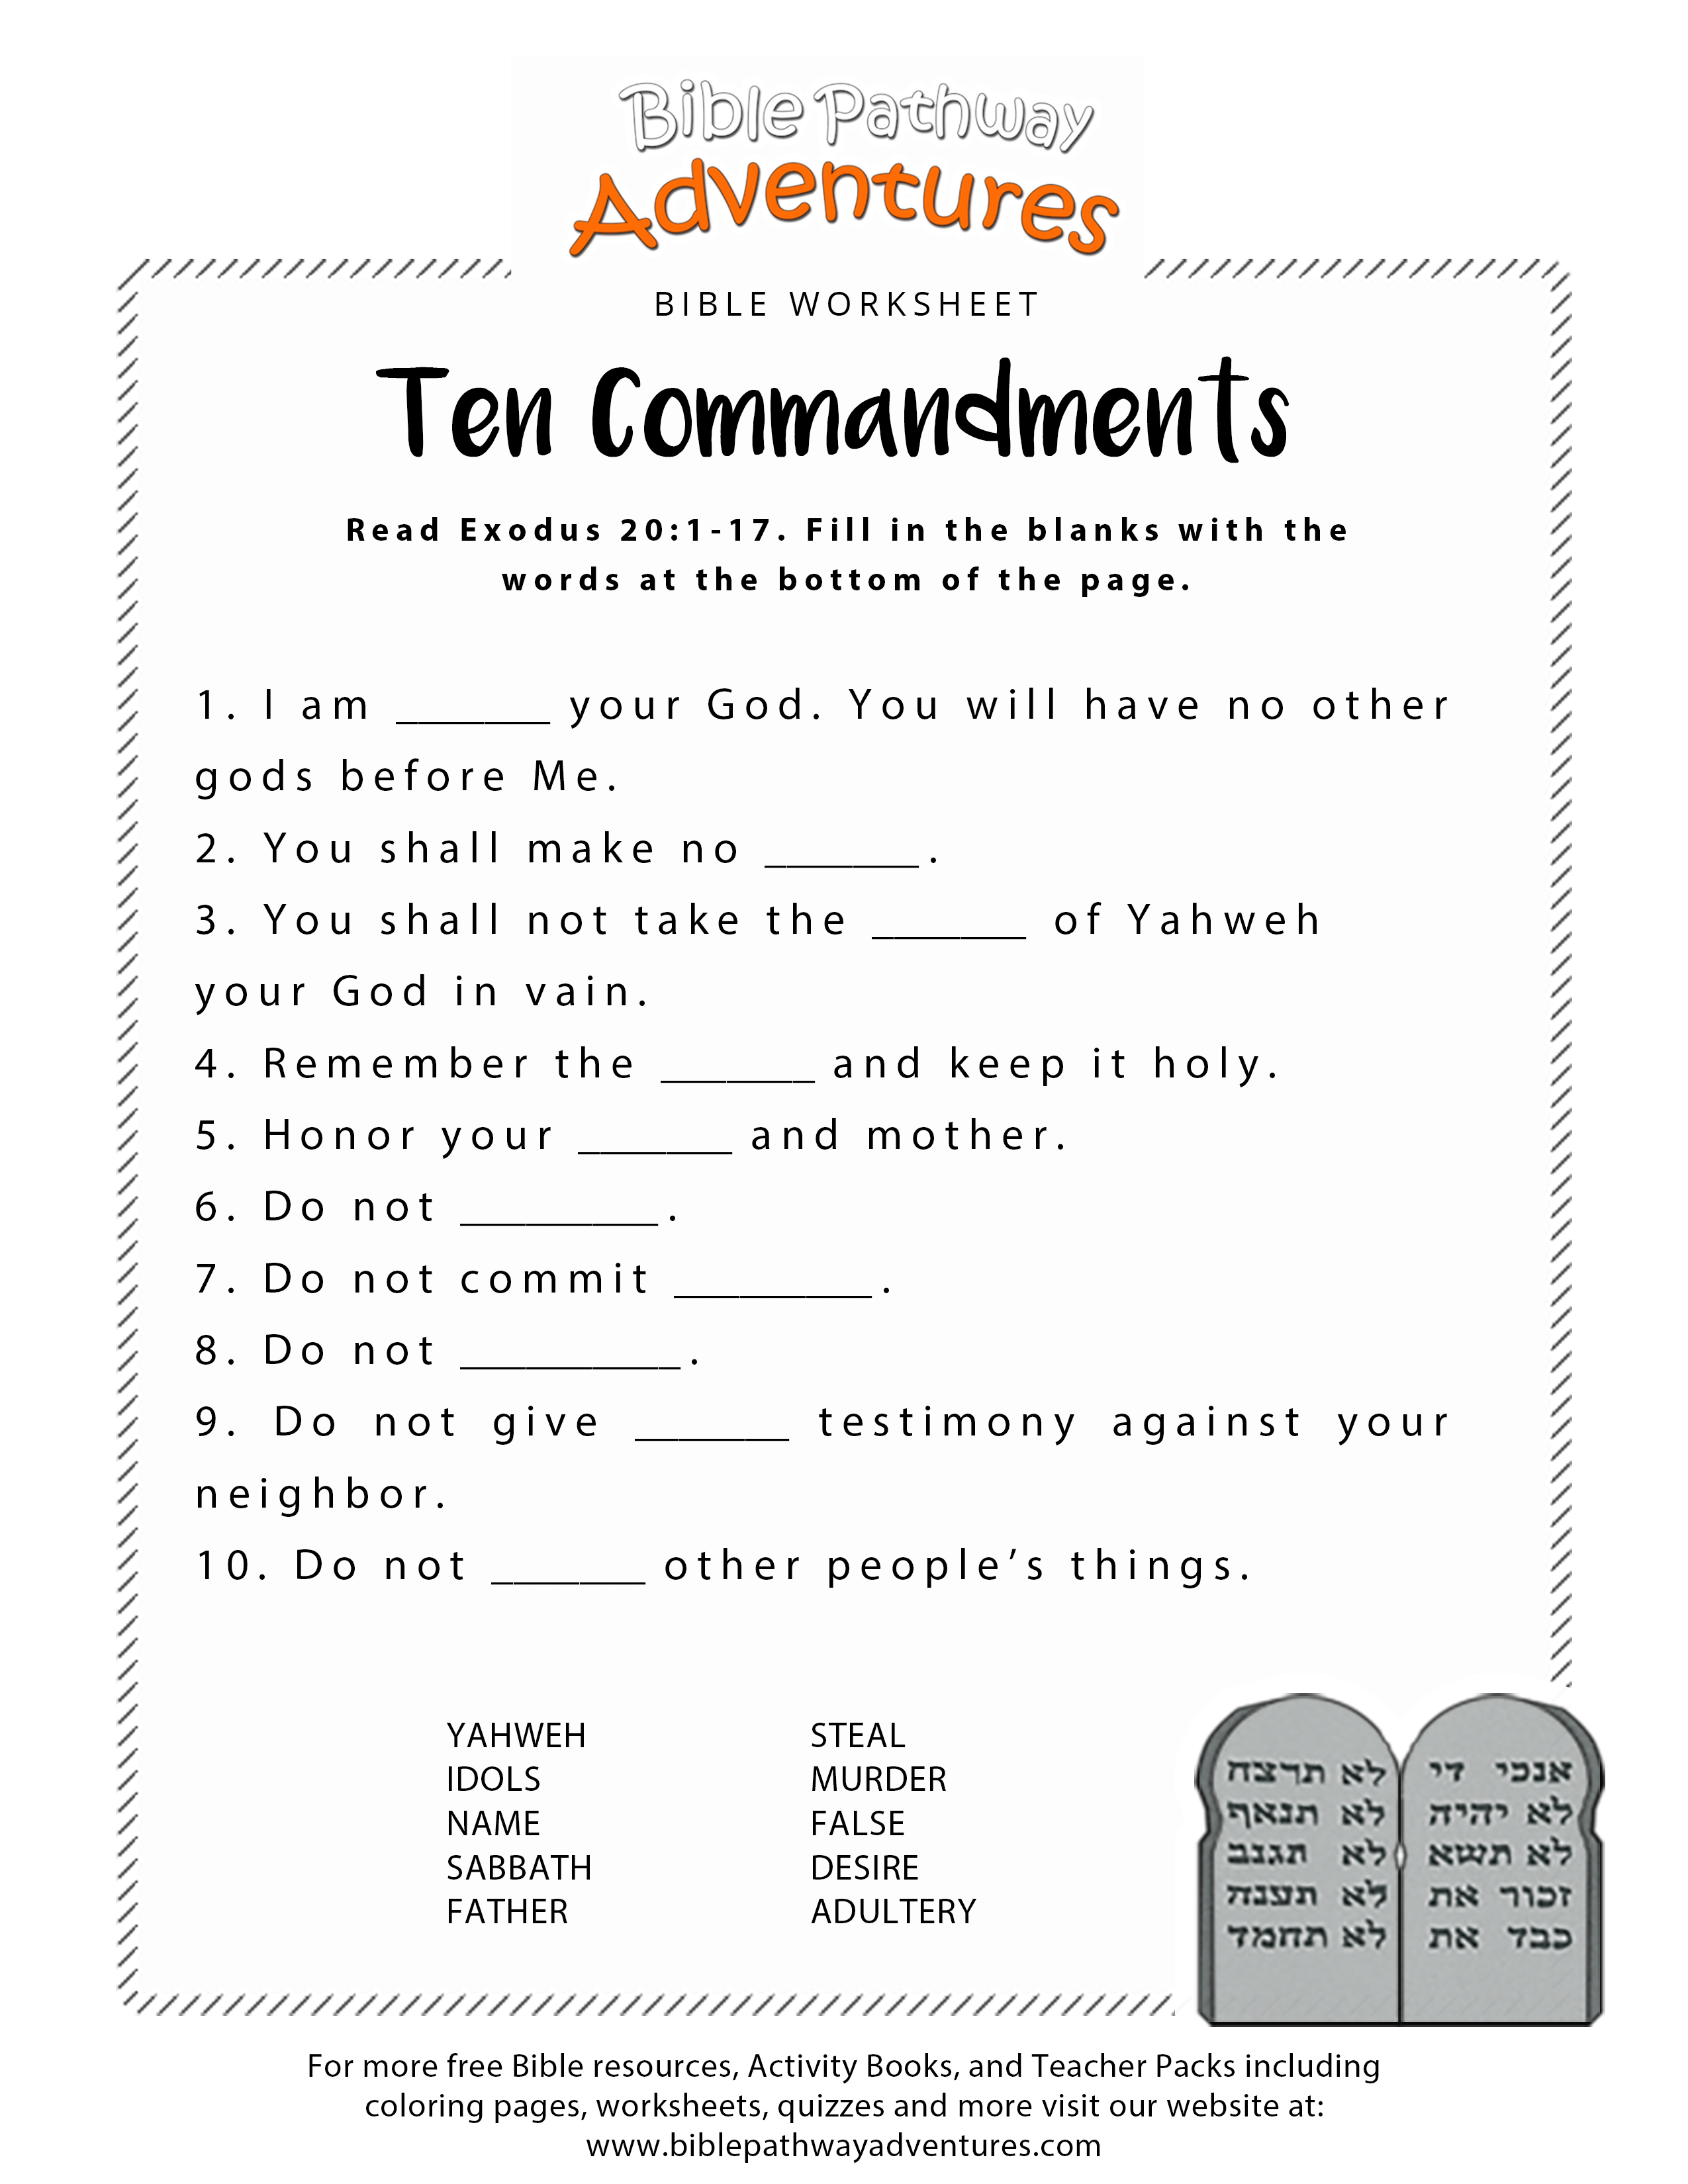 Astounding image with 10 commandments printable worksheets